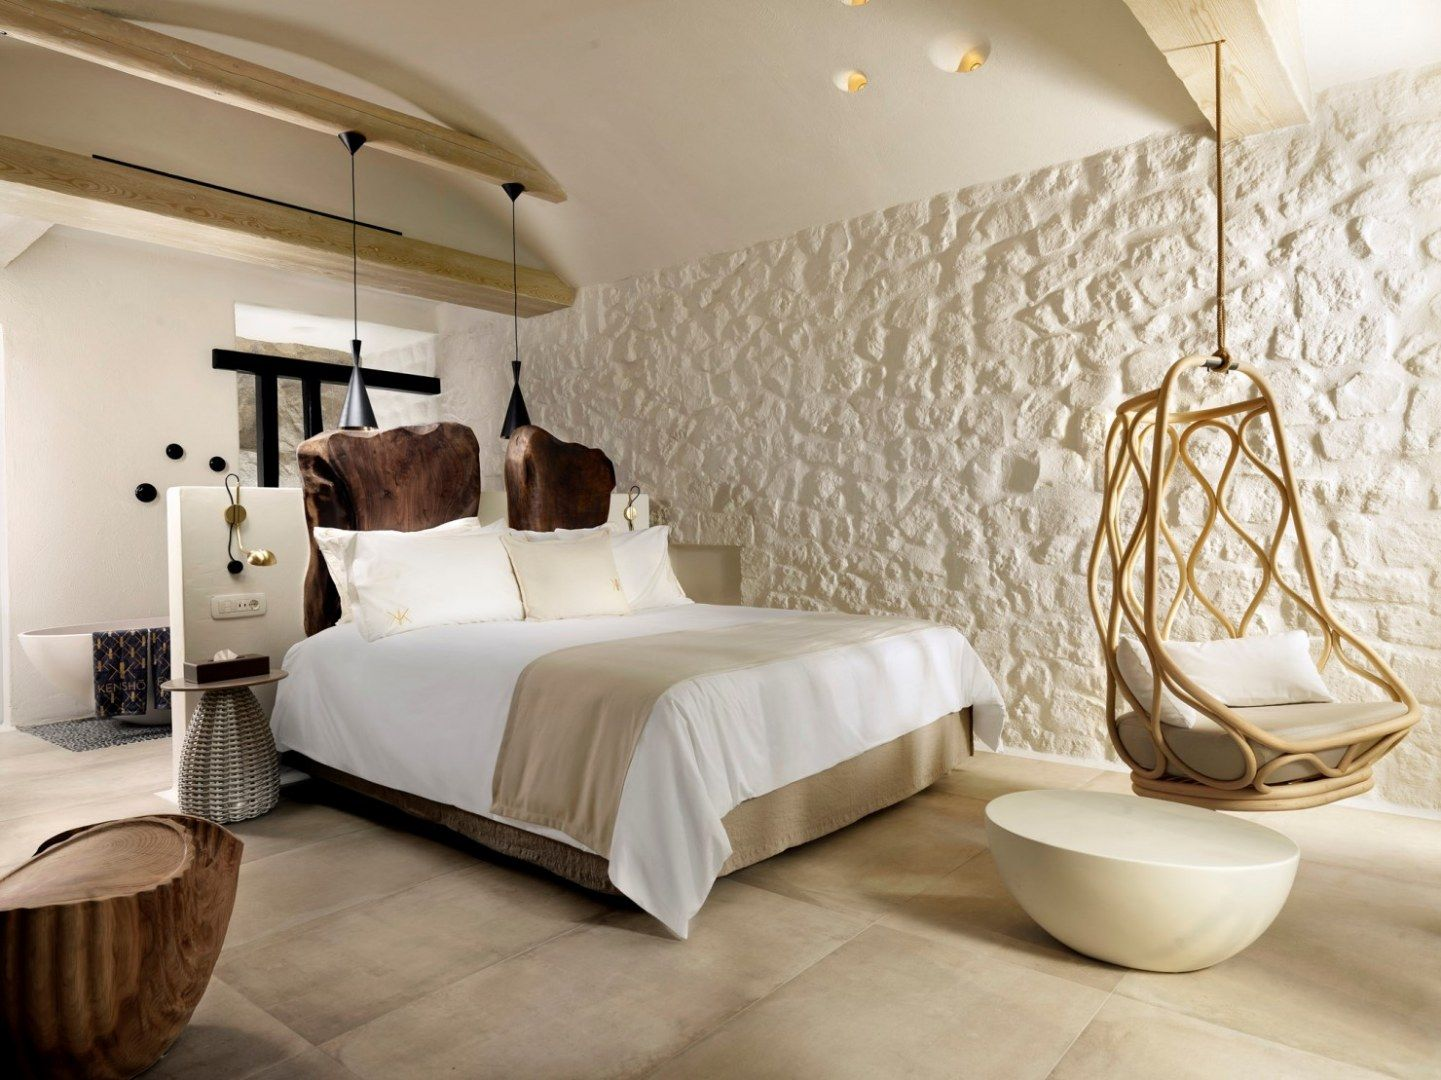 Cocoon boutique hotel inspiration interior for Design boutique hotels colroy la roche